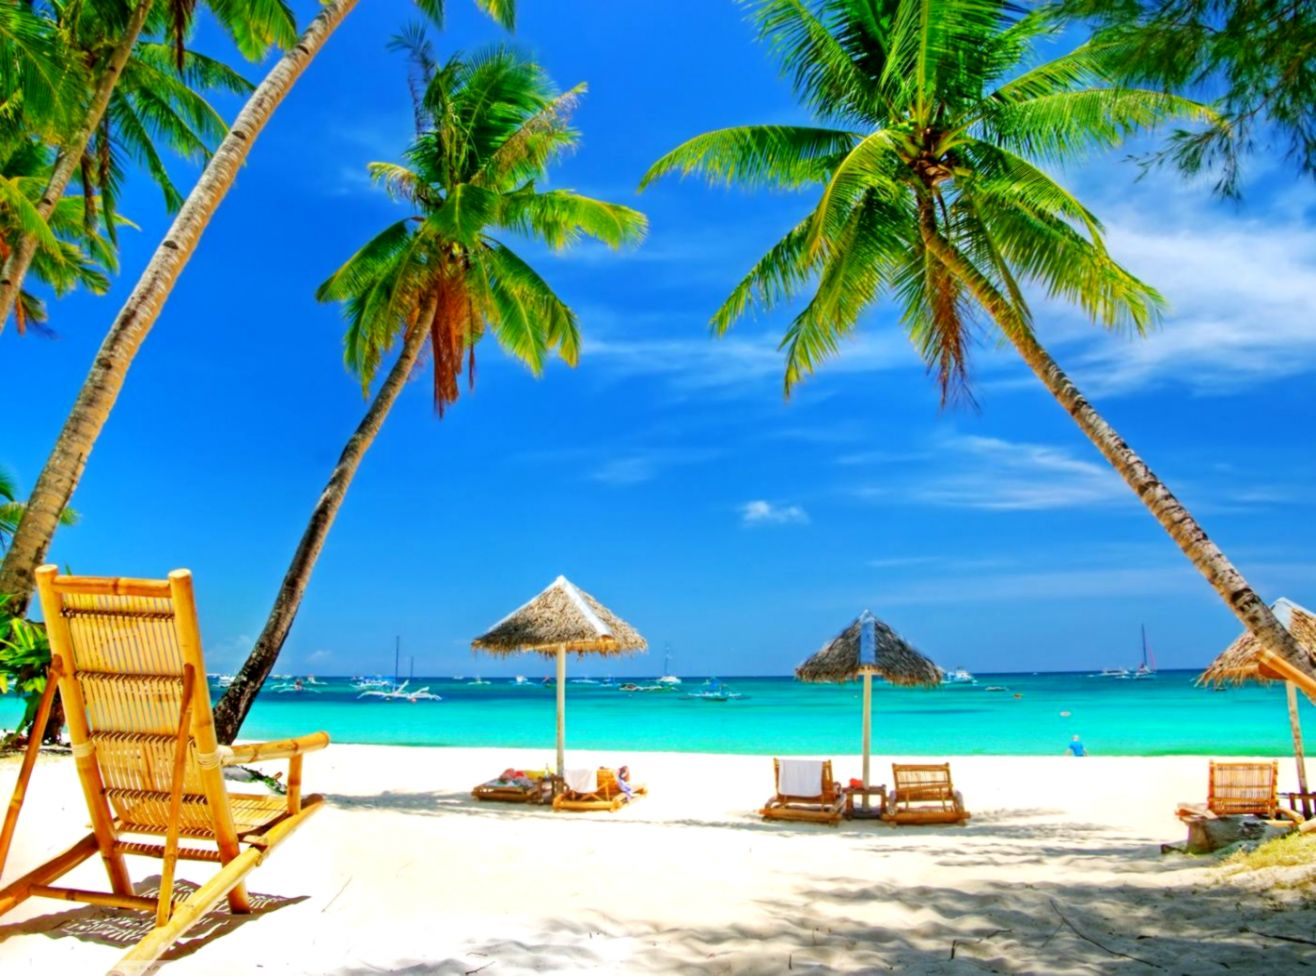 tropical beach paradise backgrounds | best image background